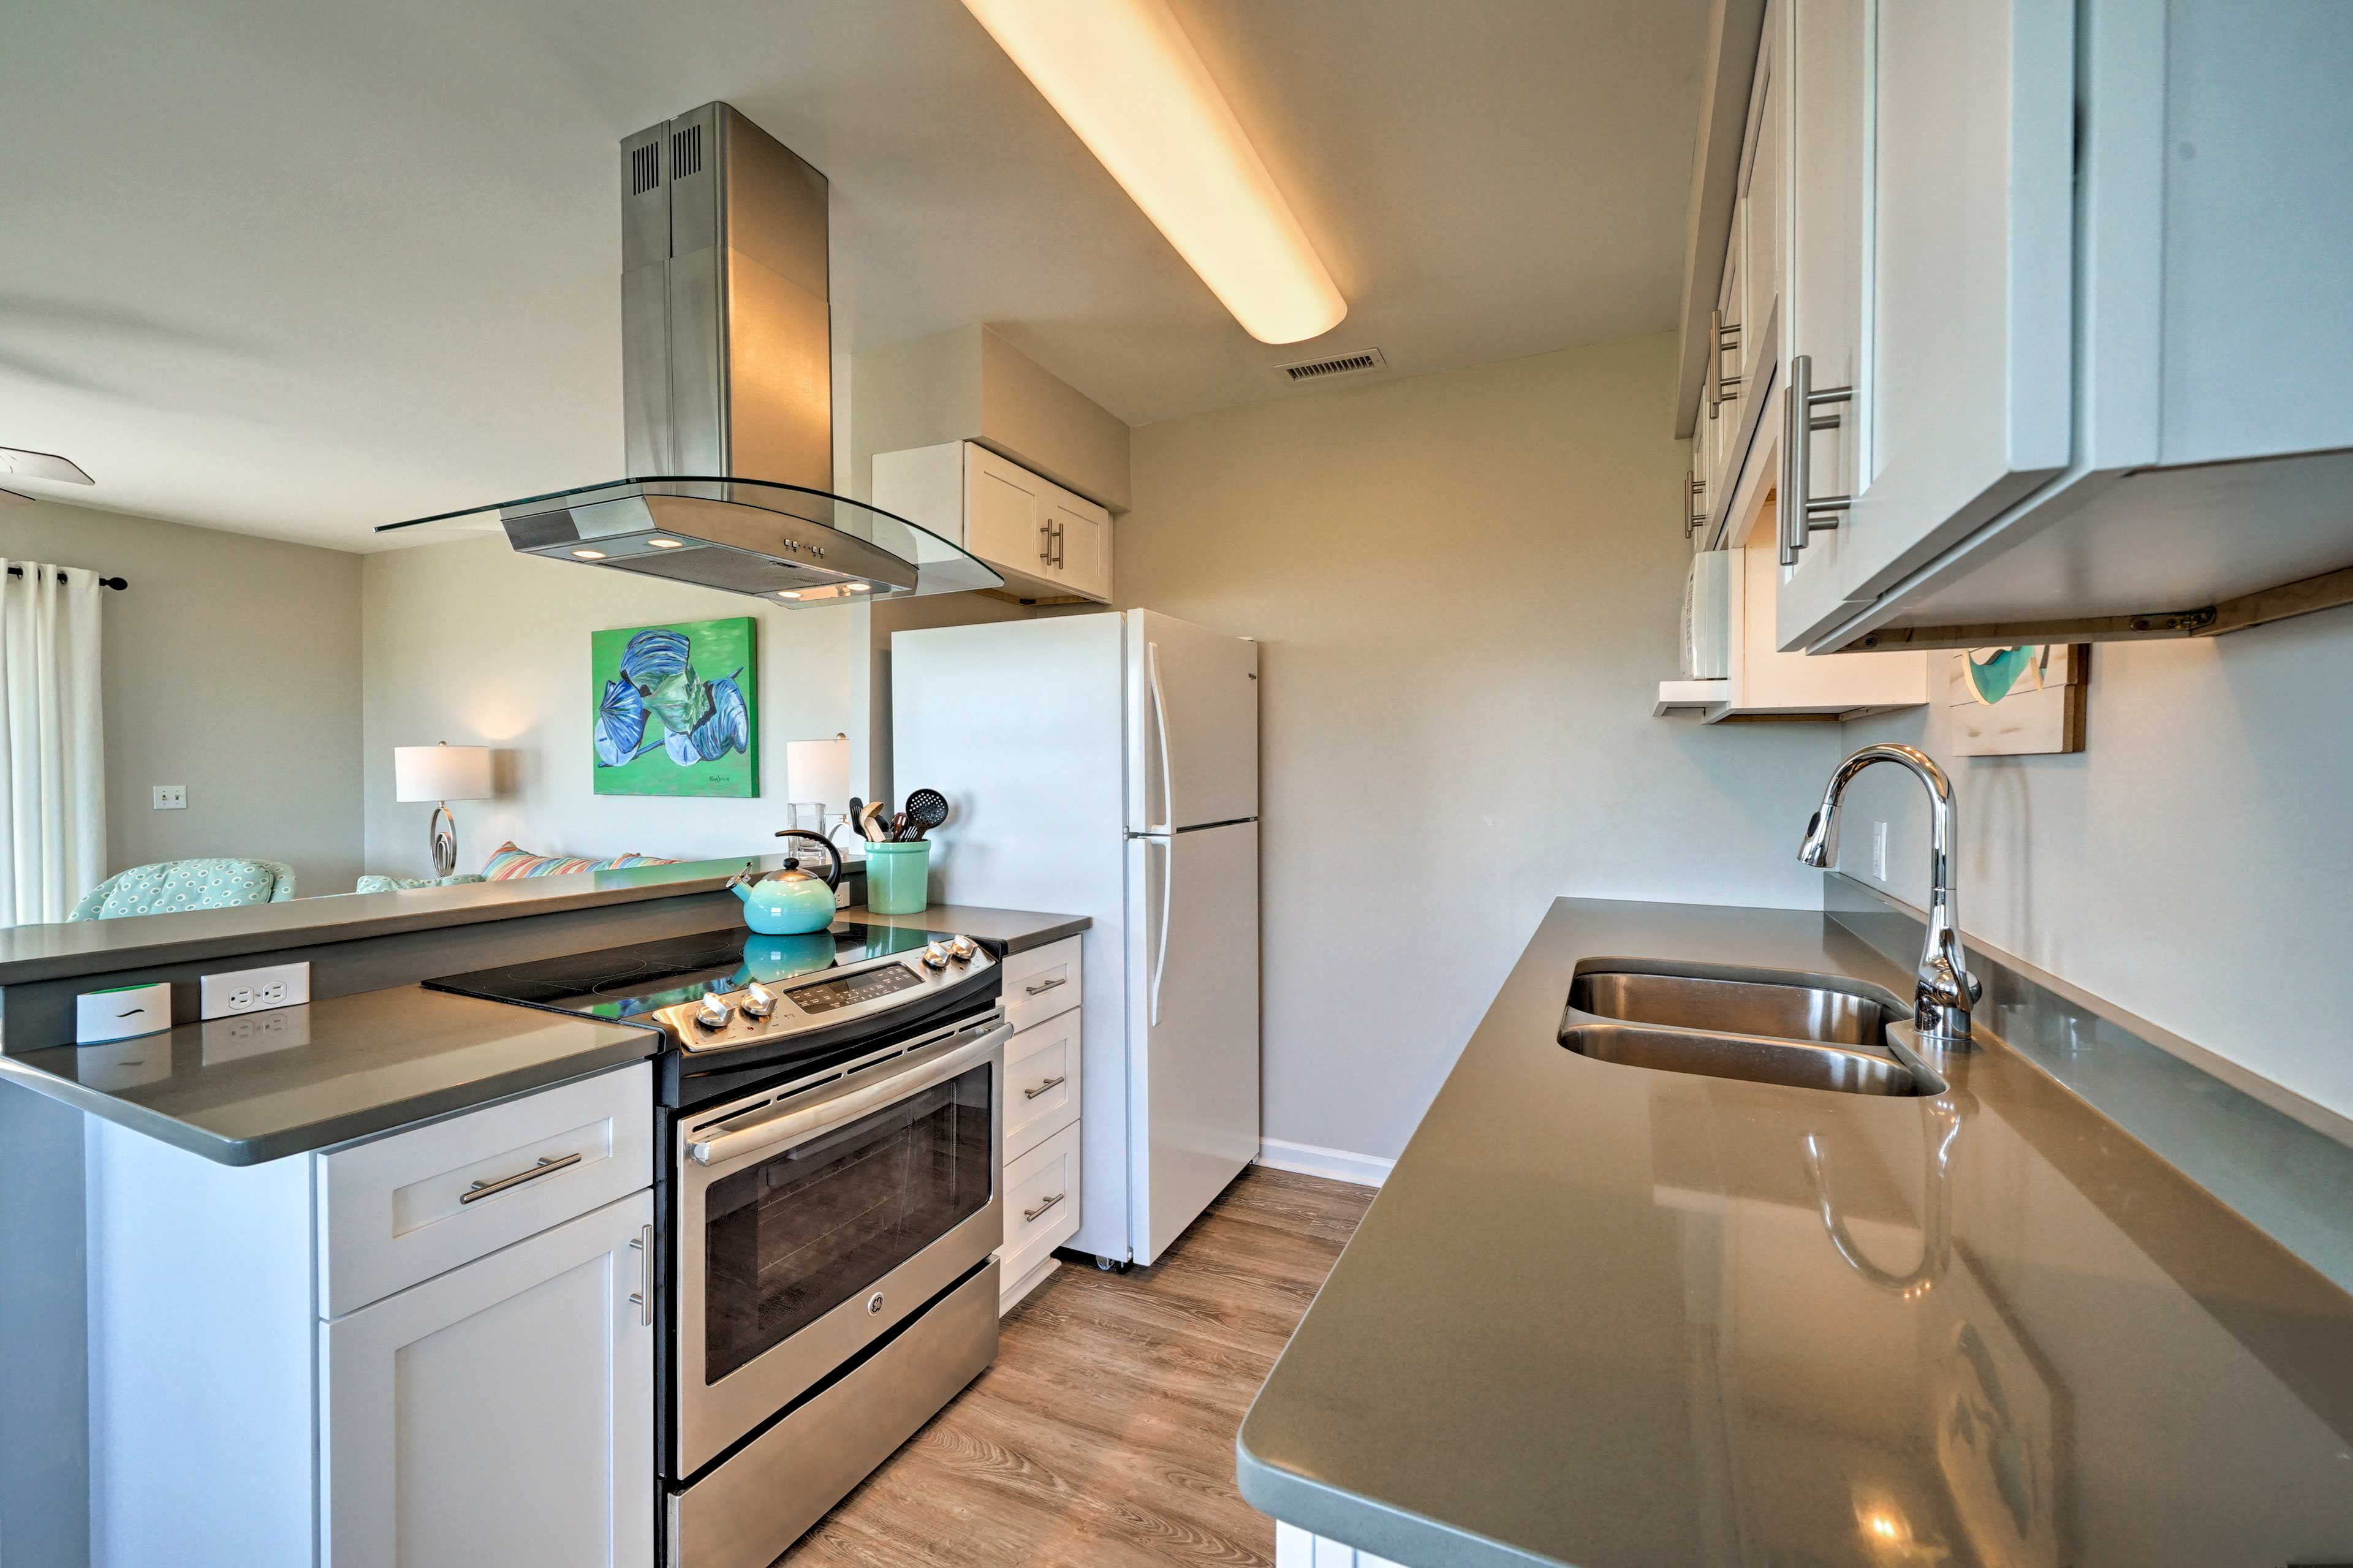 Make use of the fully equipped kitchen during your time at this home.